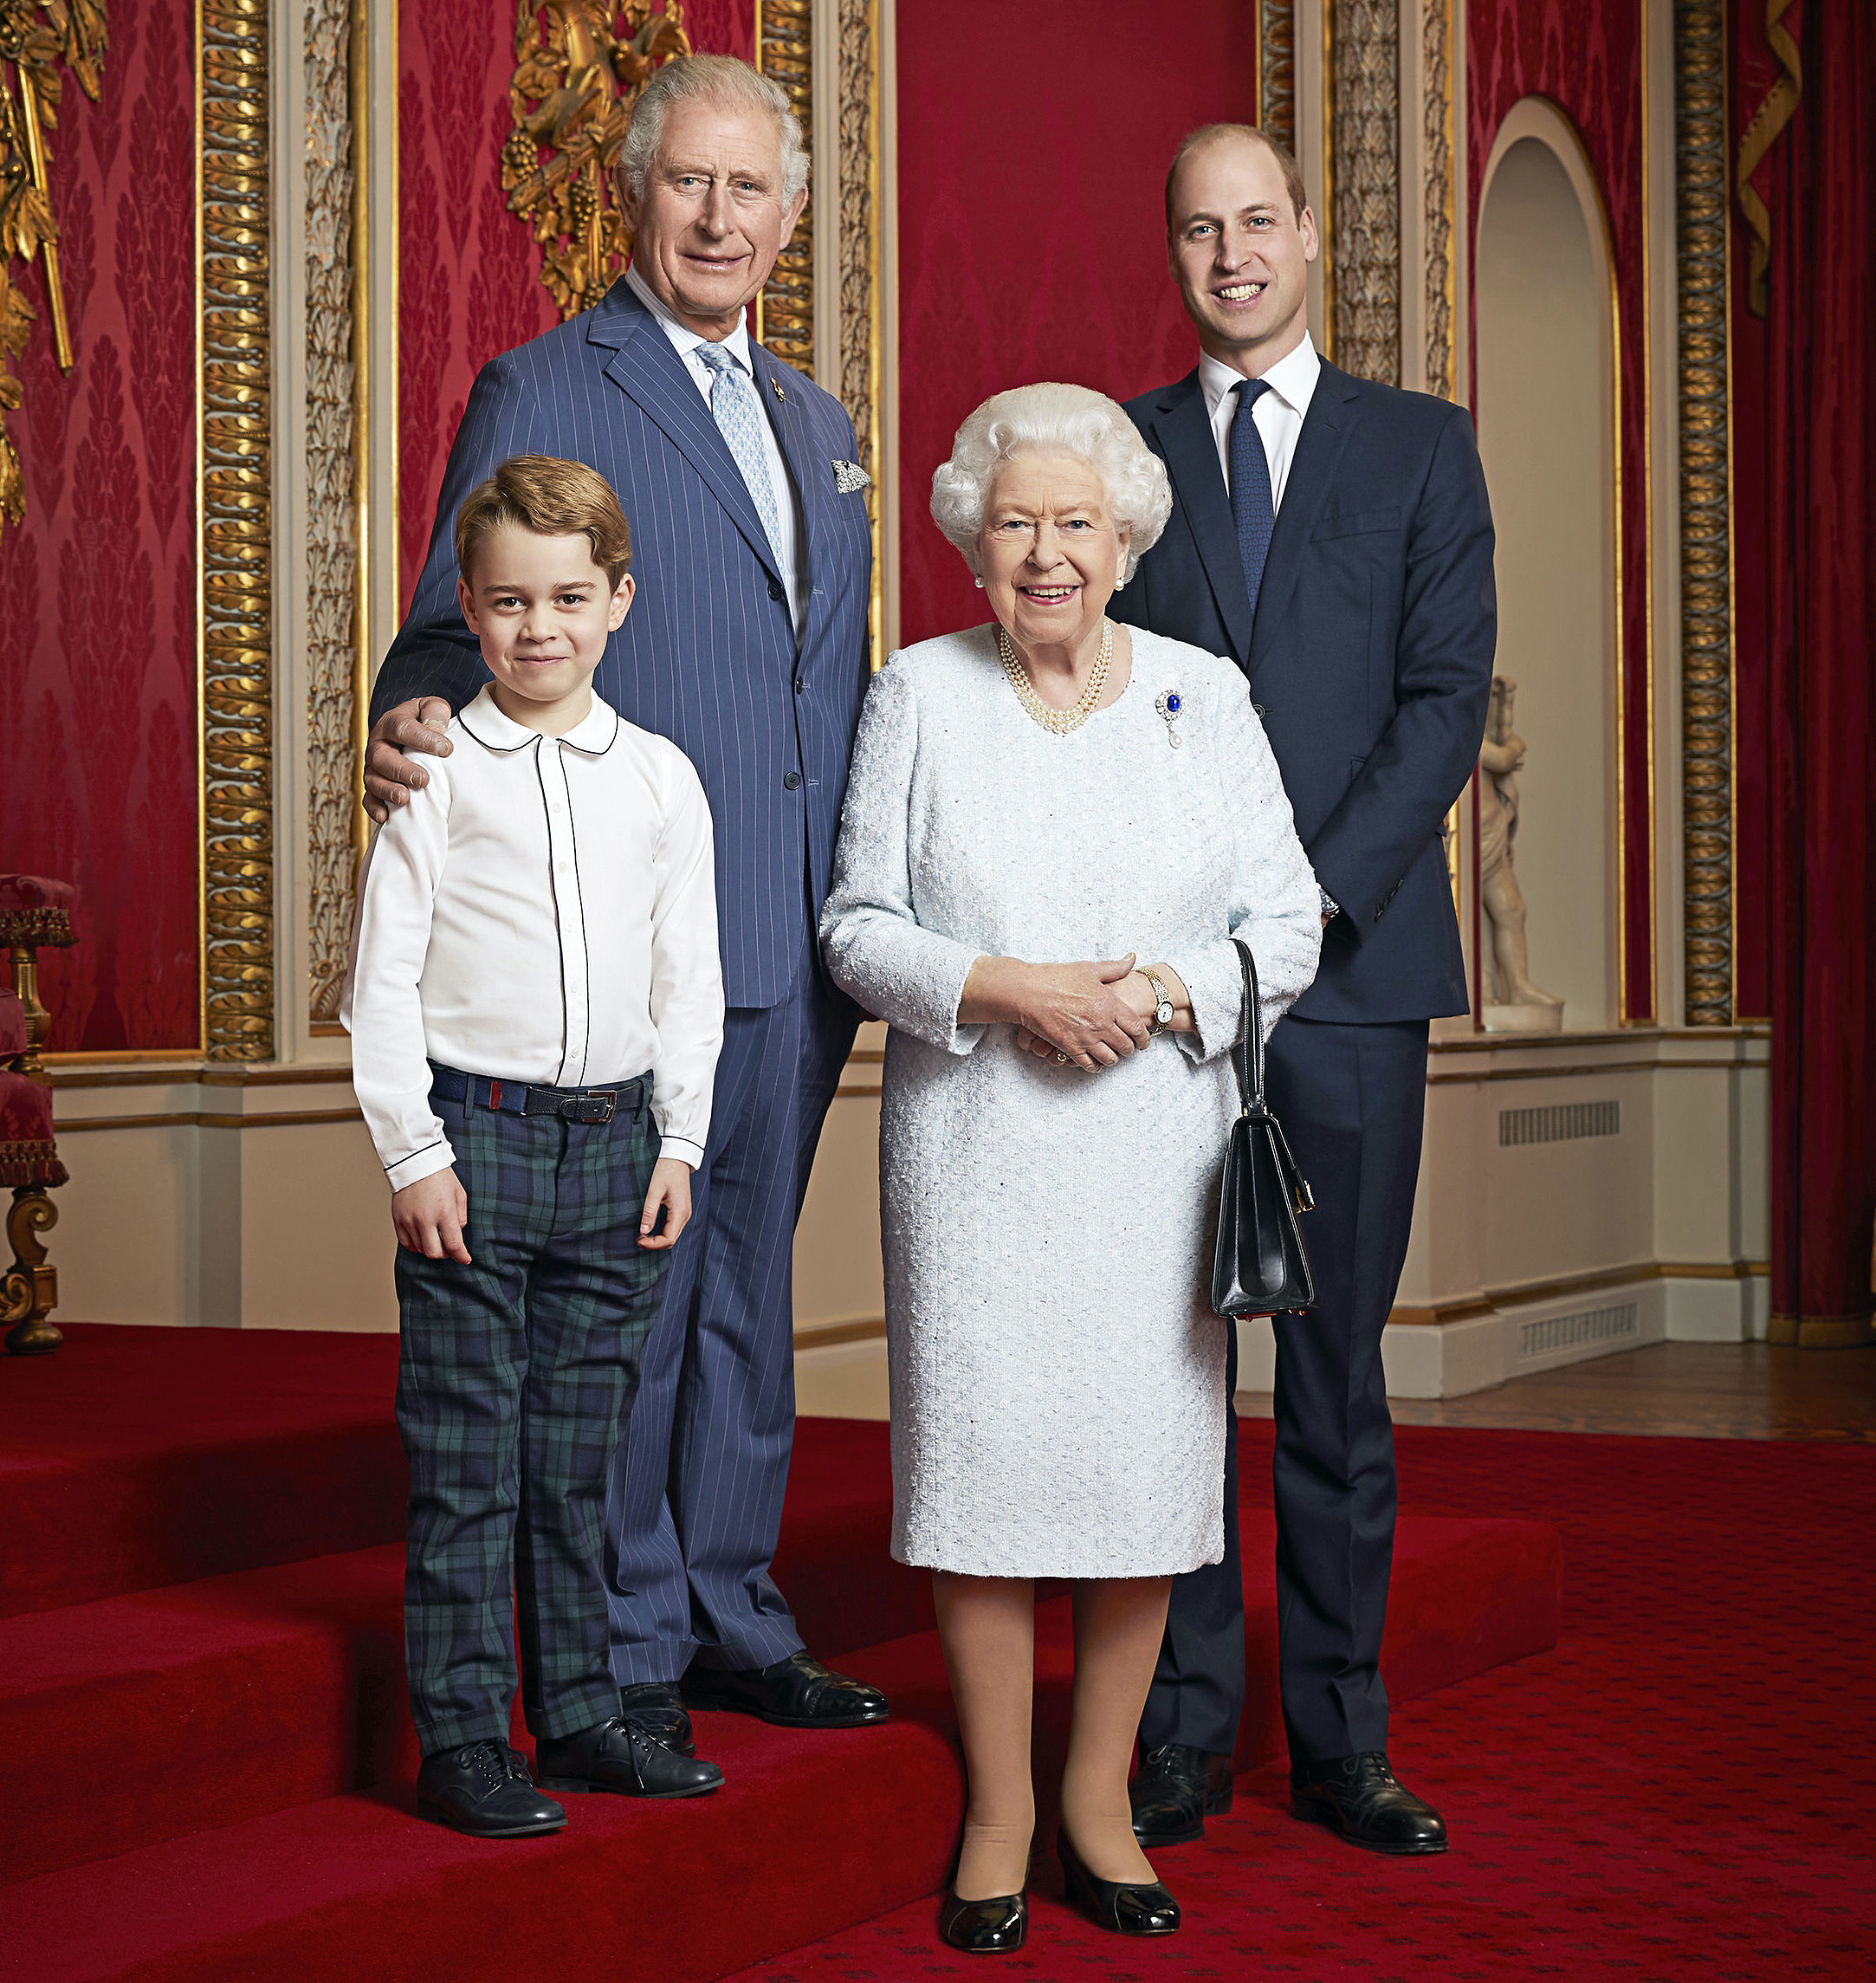 Prince William Wanted to Send Harry 'a Message' With 2019 Succession Photo